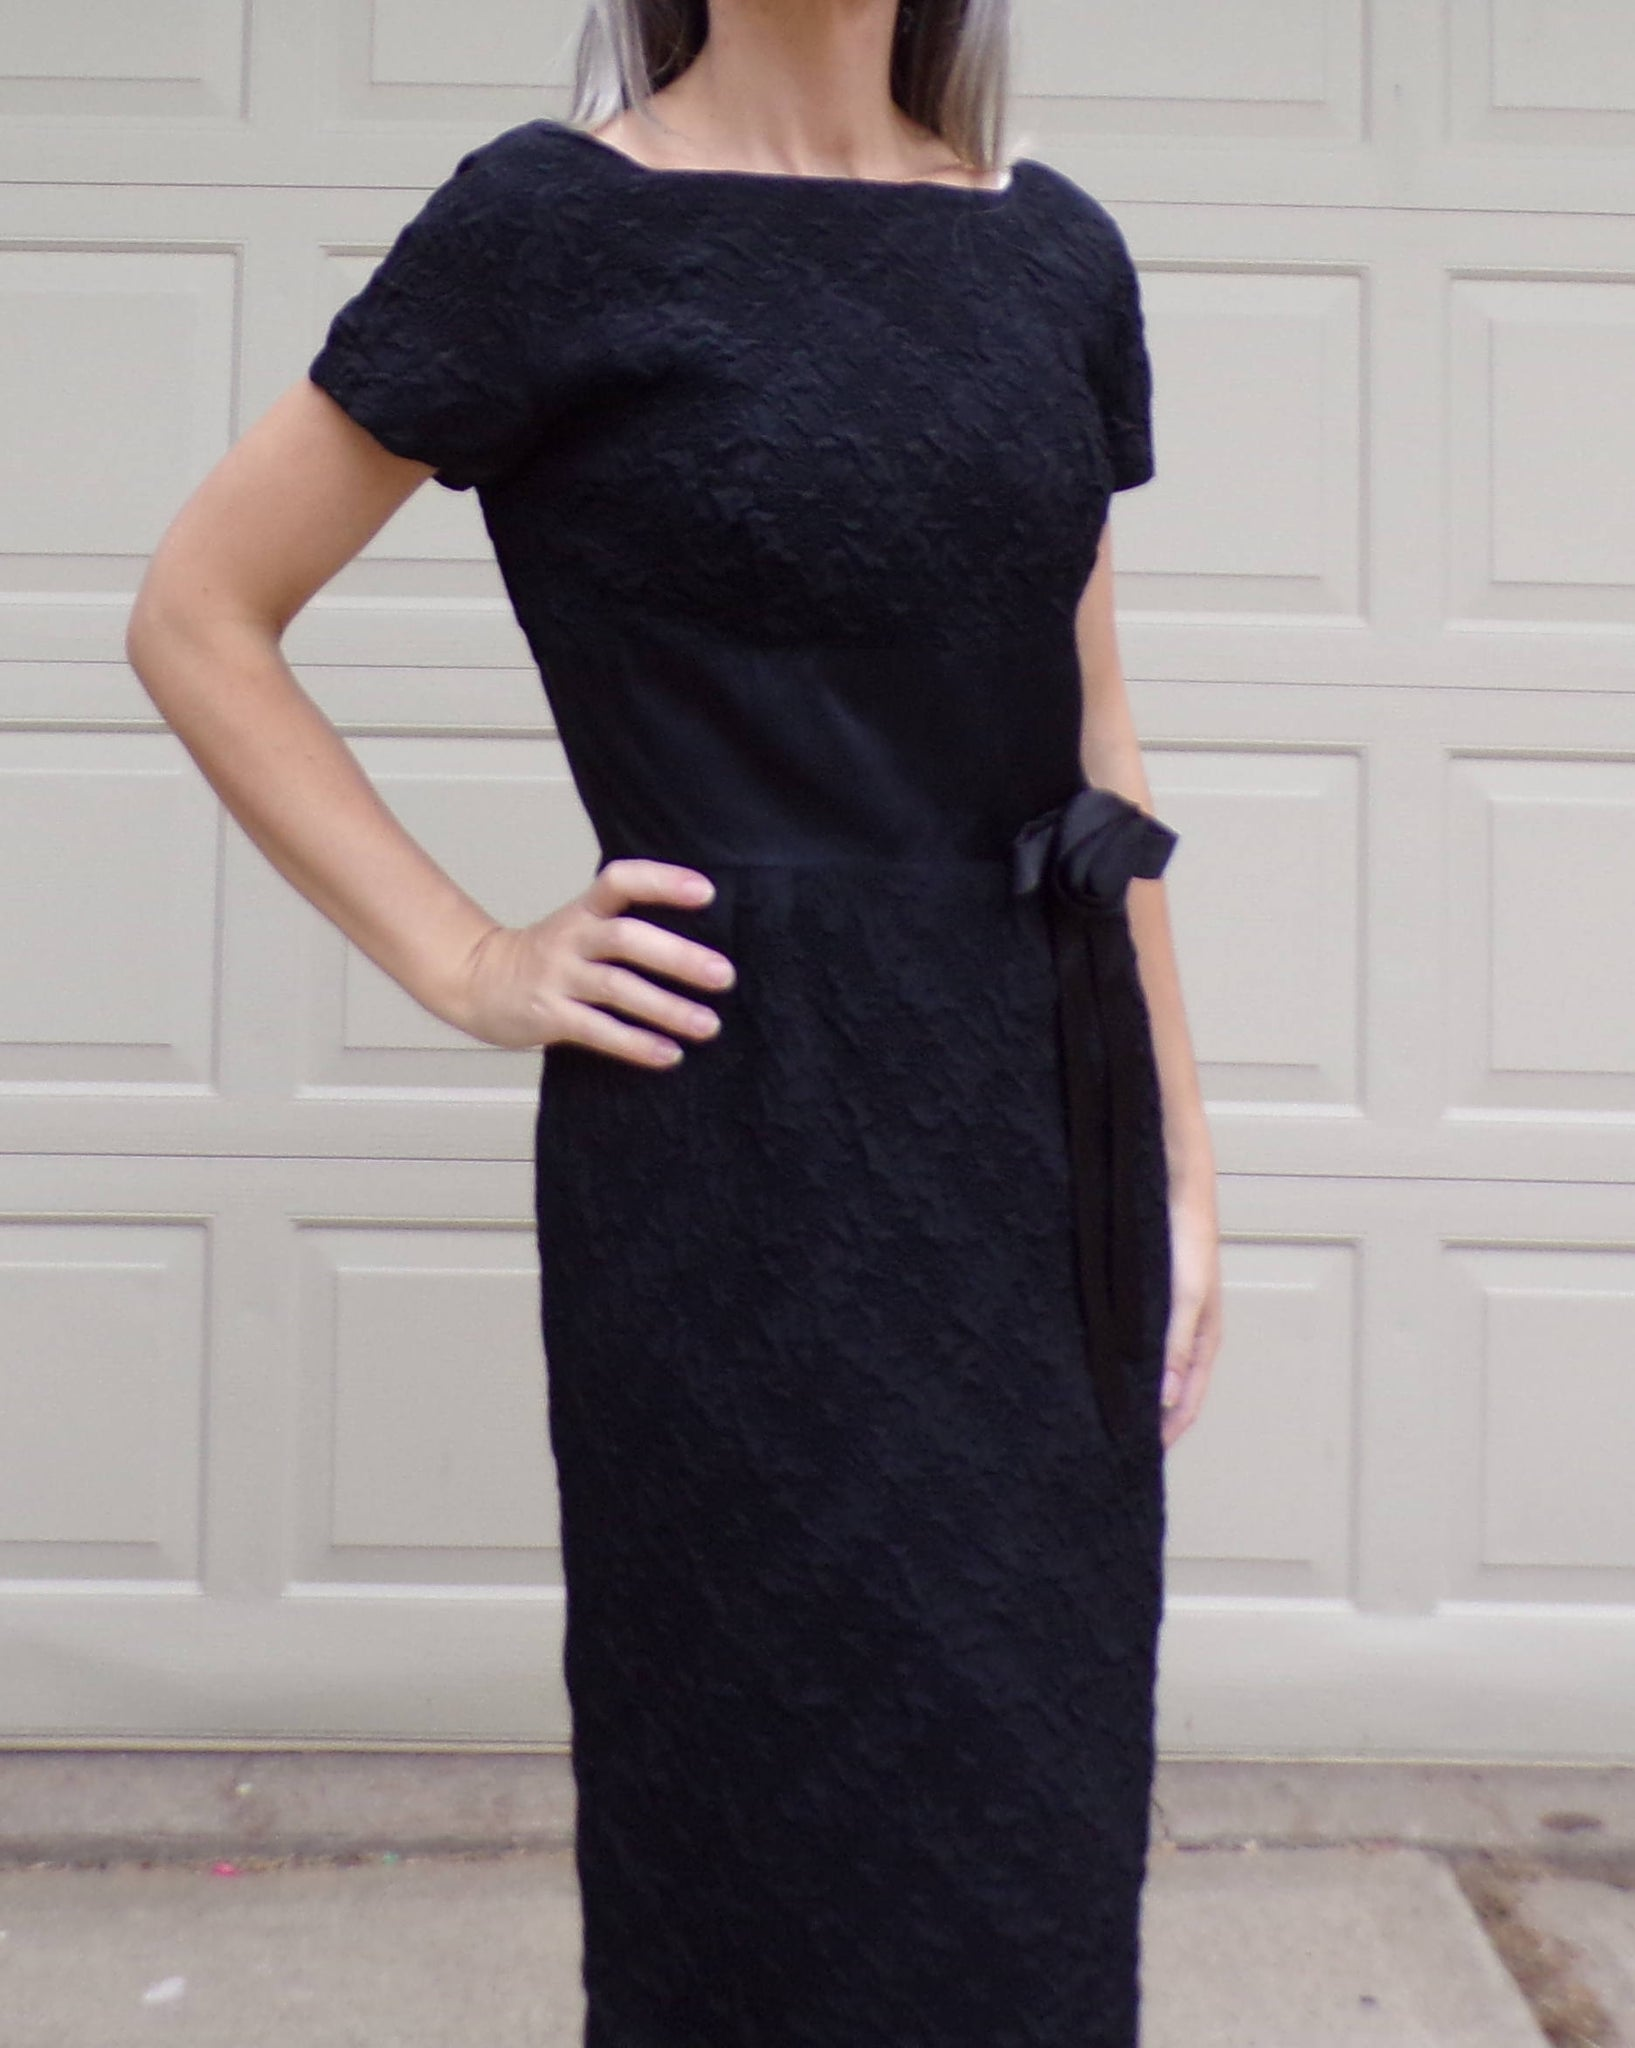 pixie of california BLACK WIGGLE DRESS 50's 60's S M (G6)